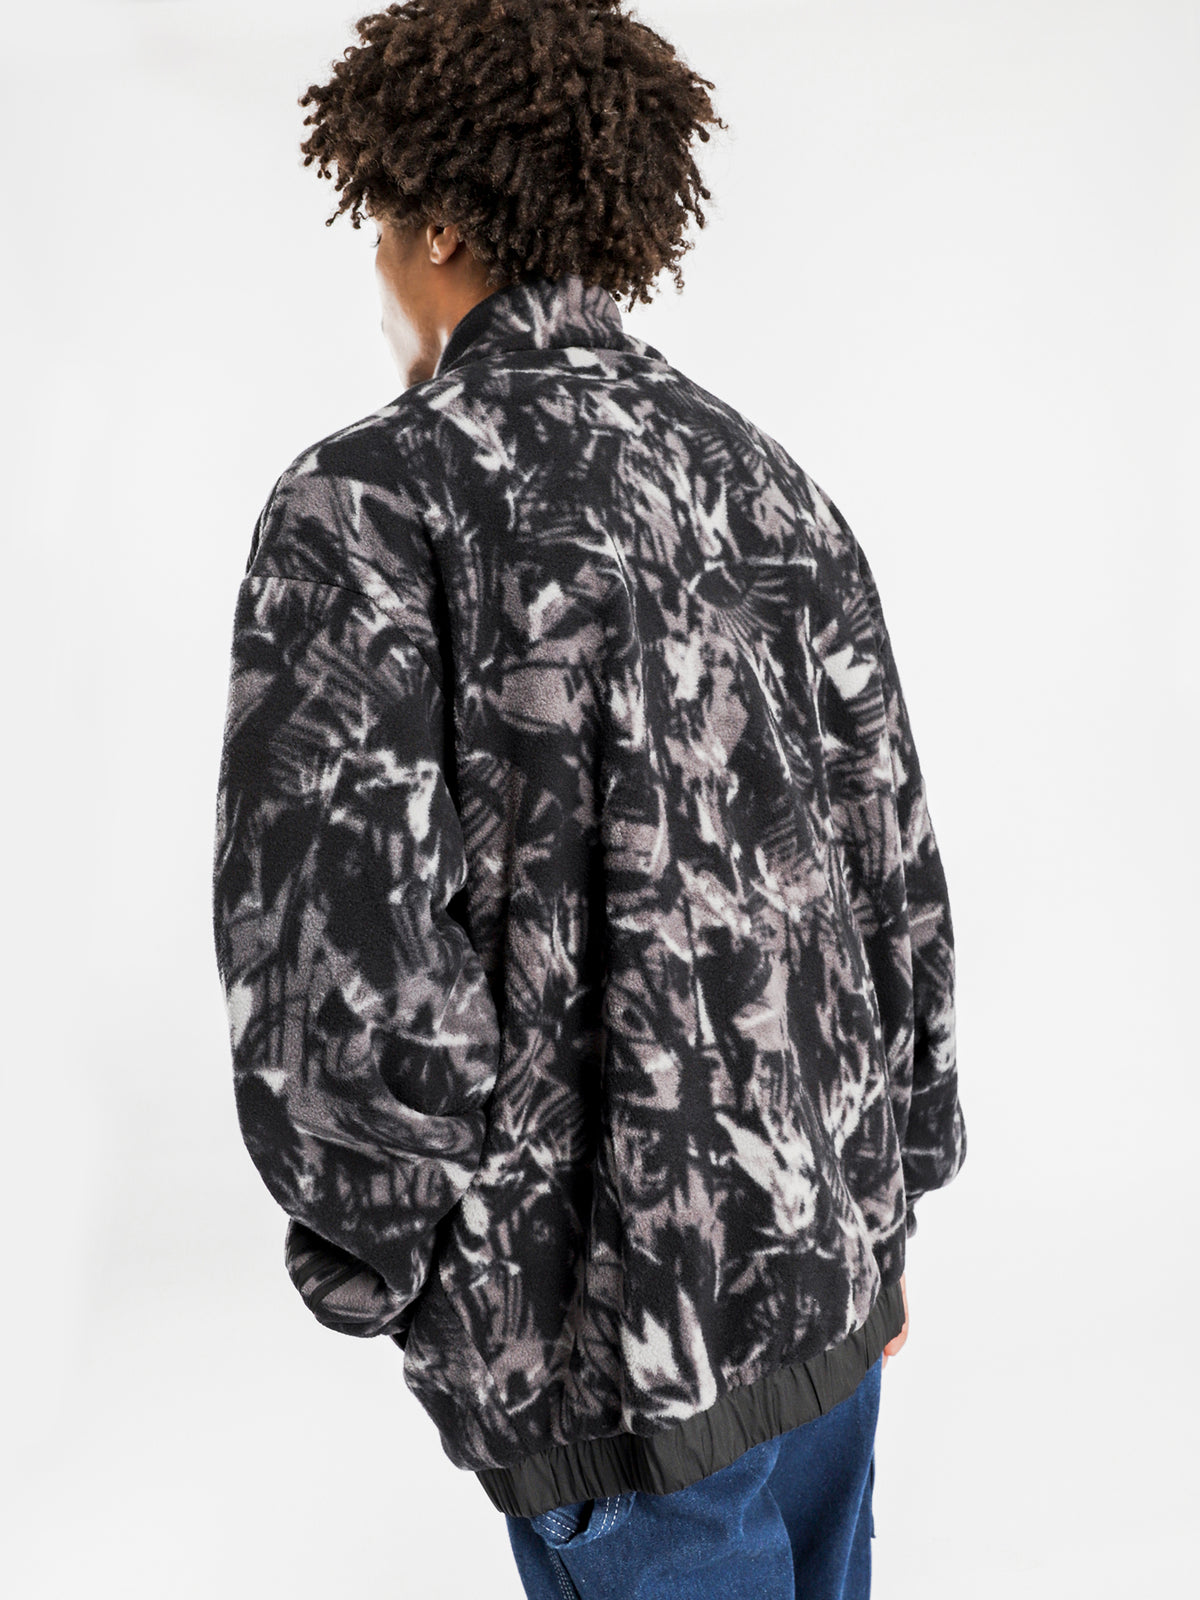 All Over Print Jacket in Black